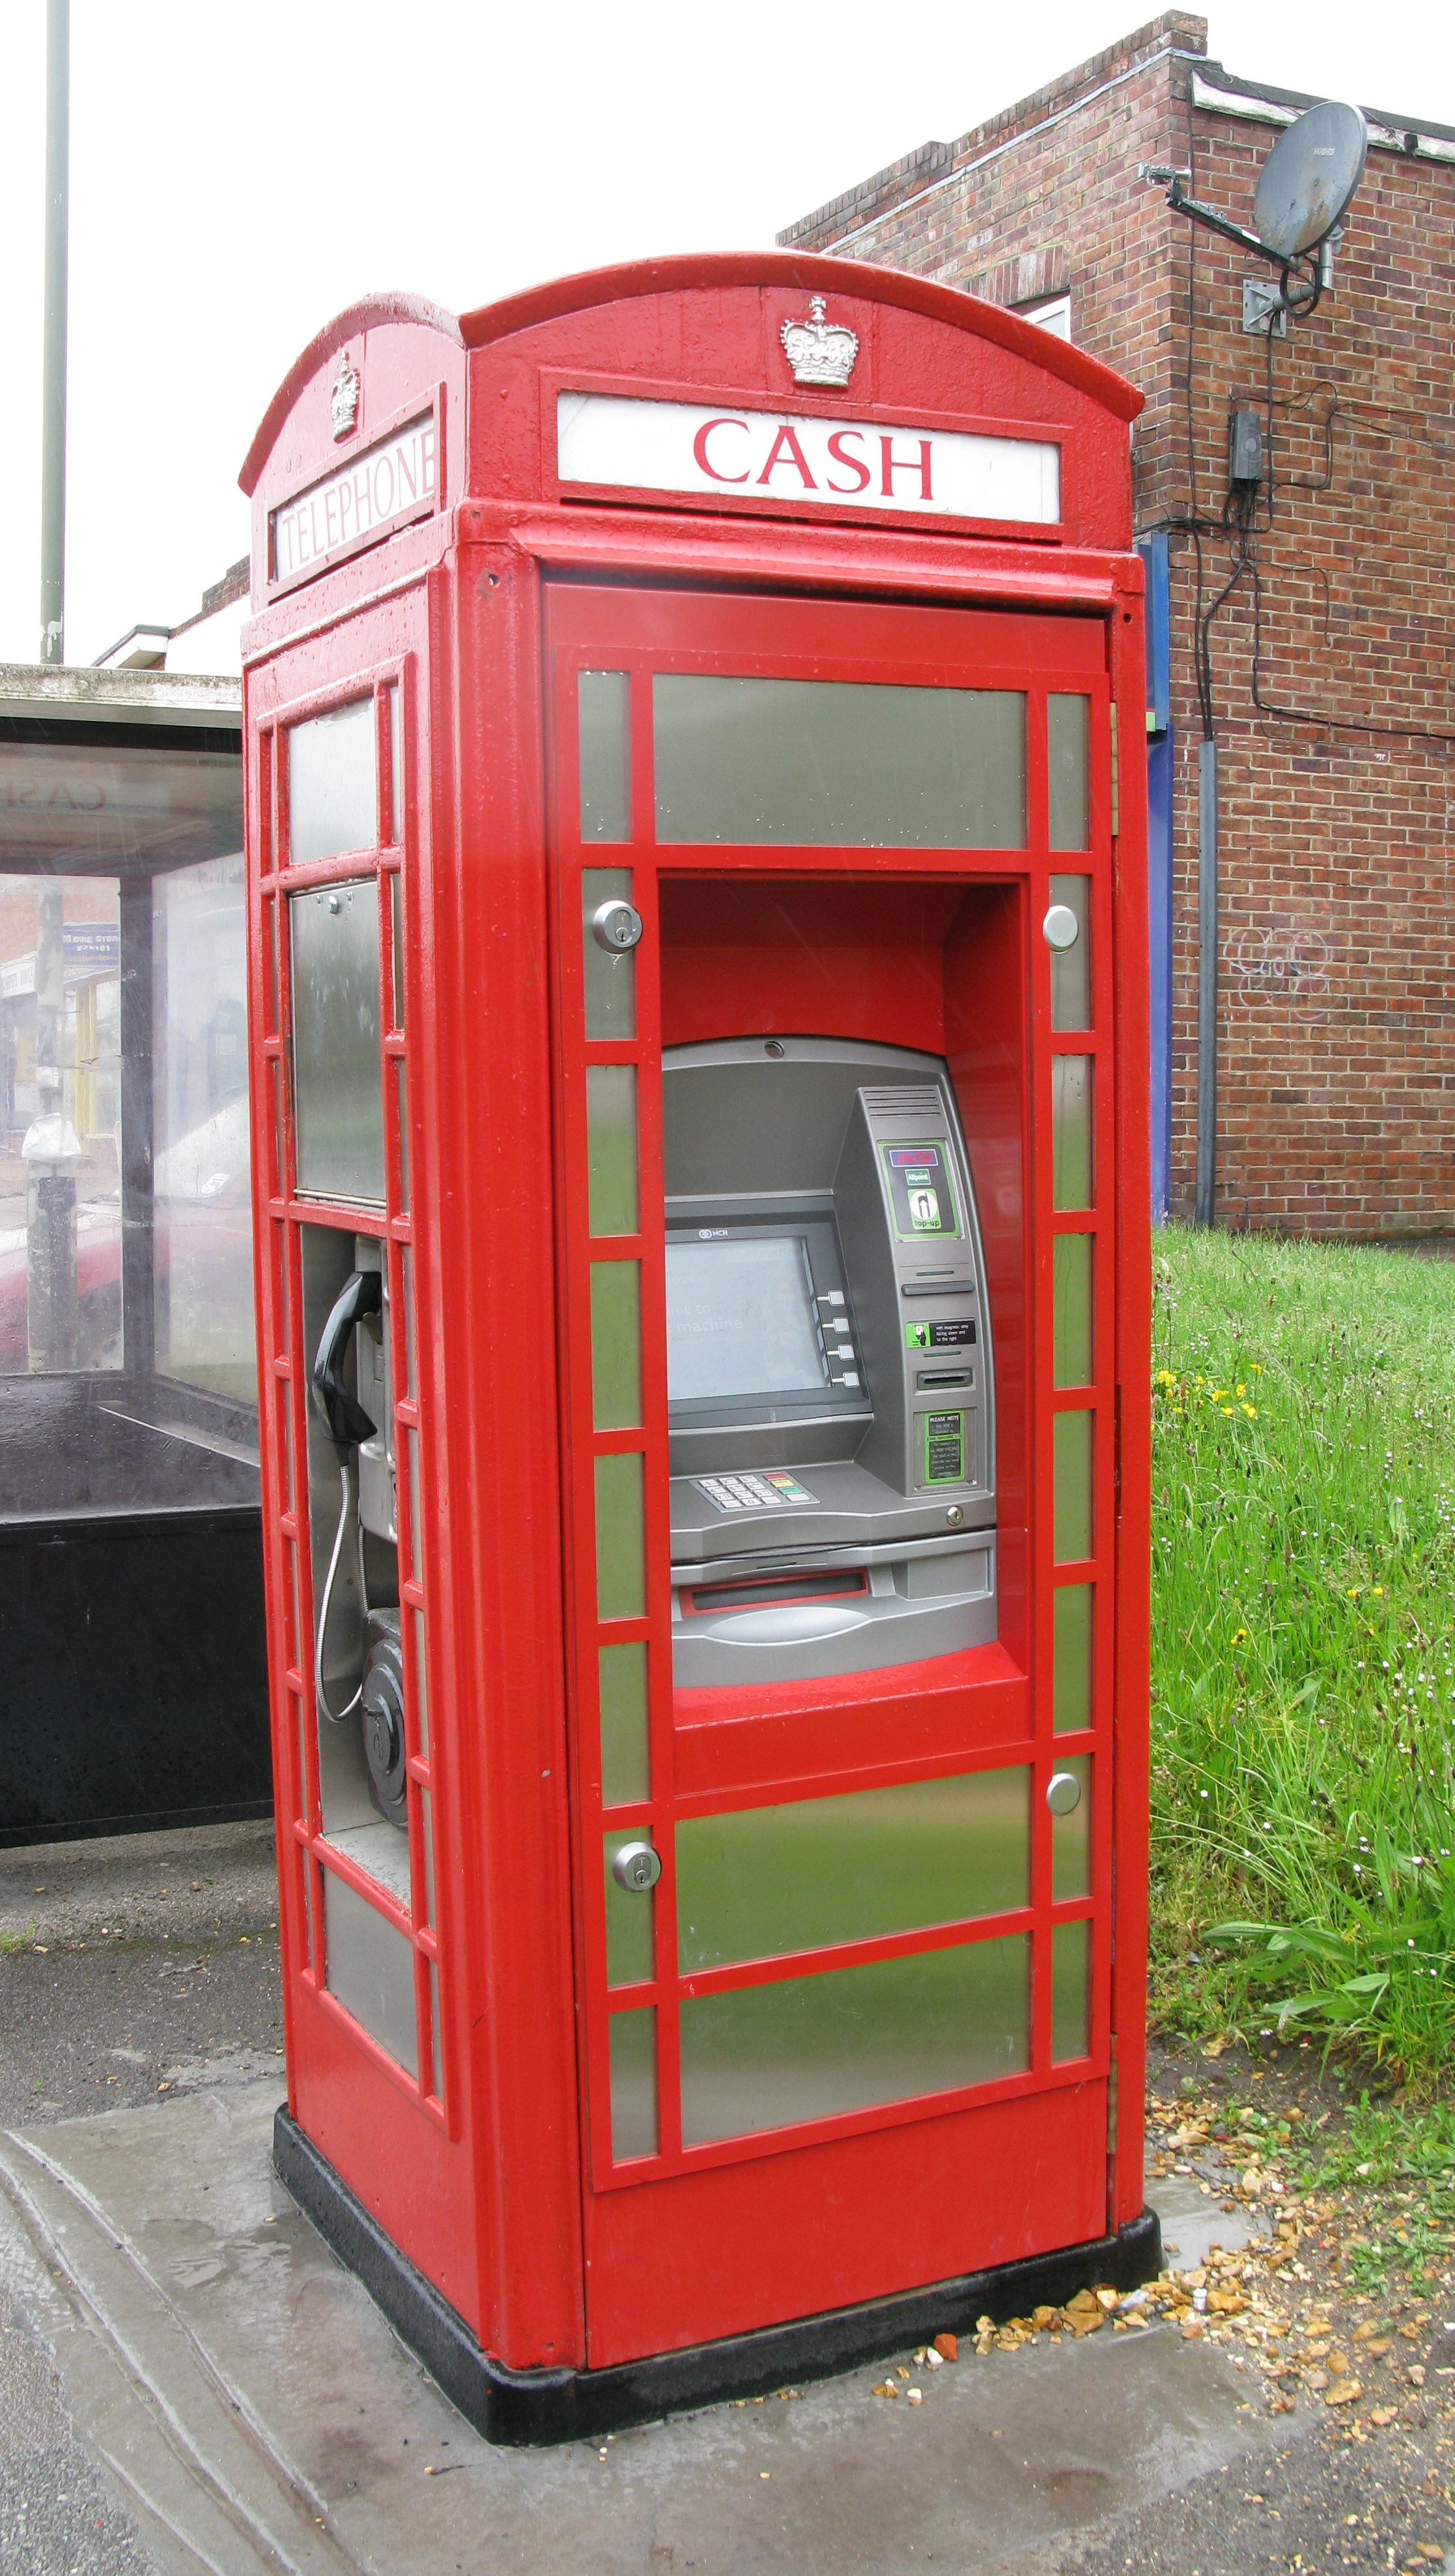 K6 converted to provide both telephone call point and cash-point facilities. New Forest